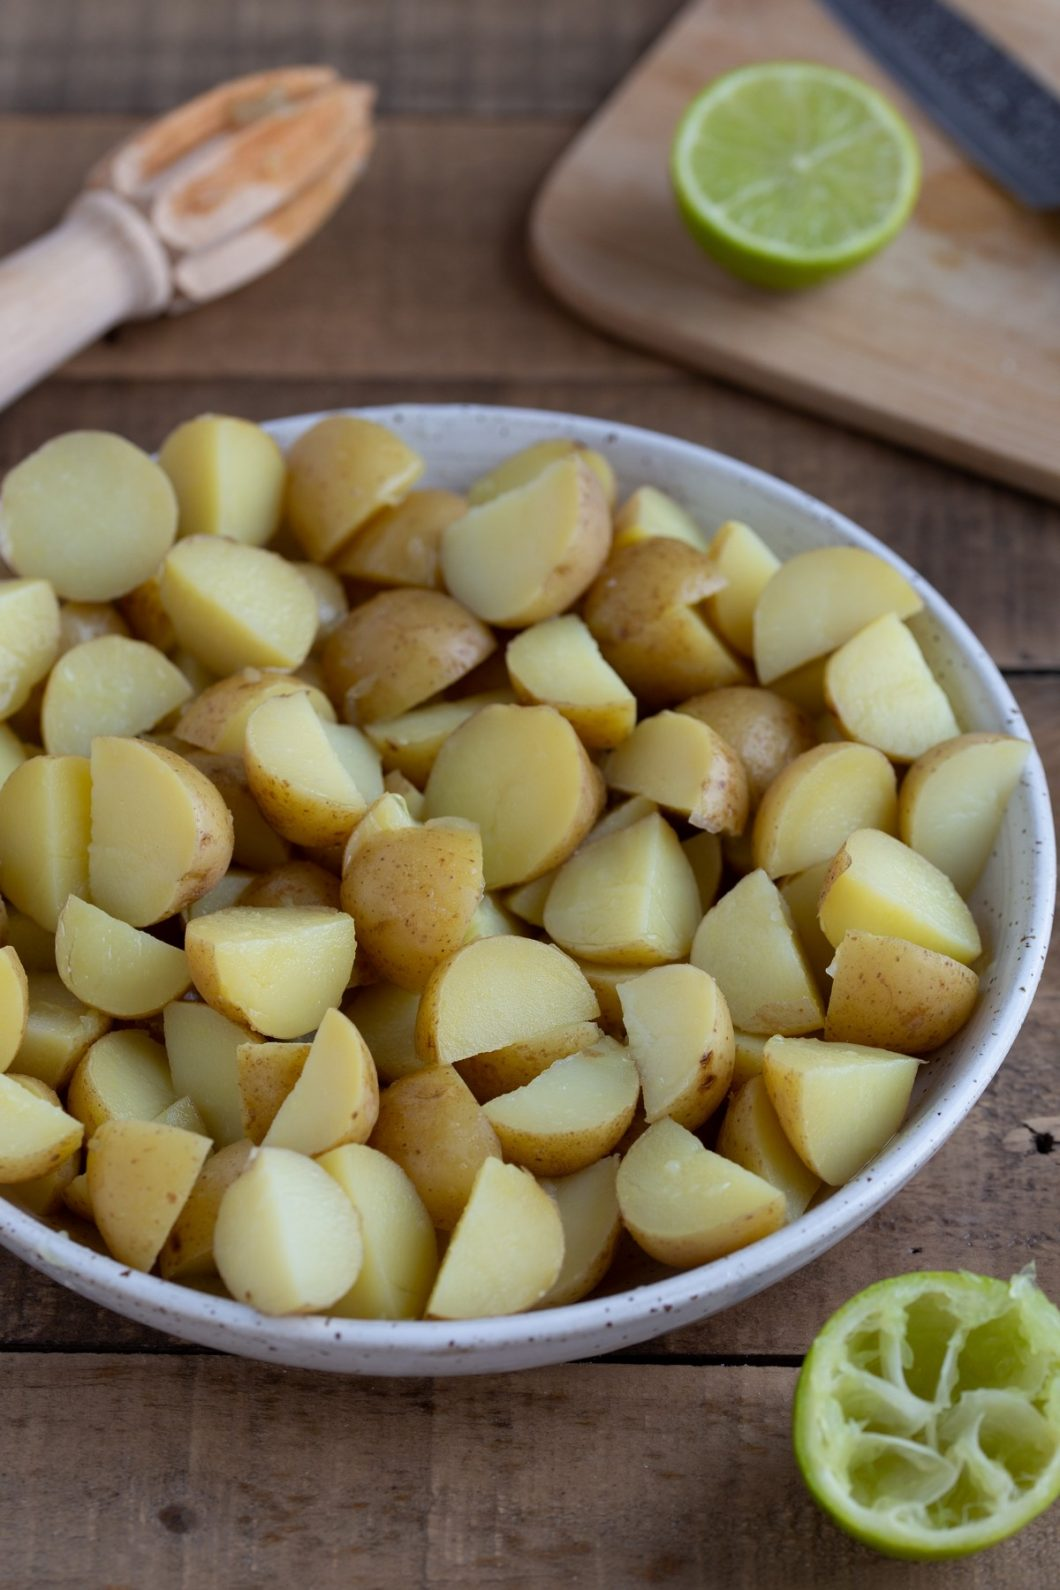 Baby potatoes, cooked, cut in quarters and placed in a bowl.